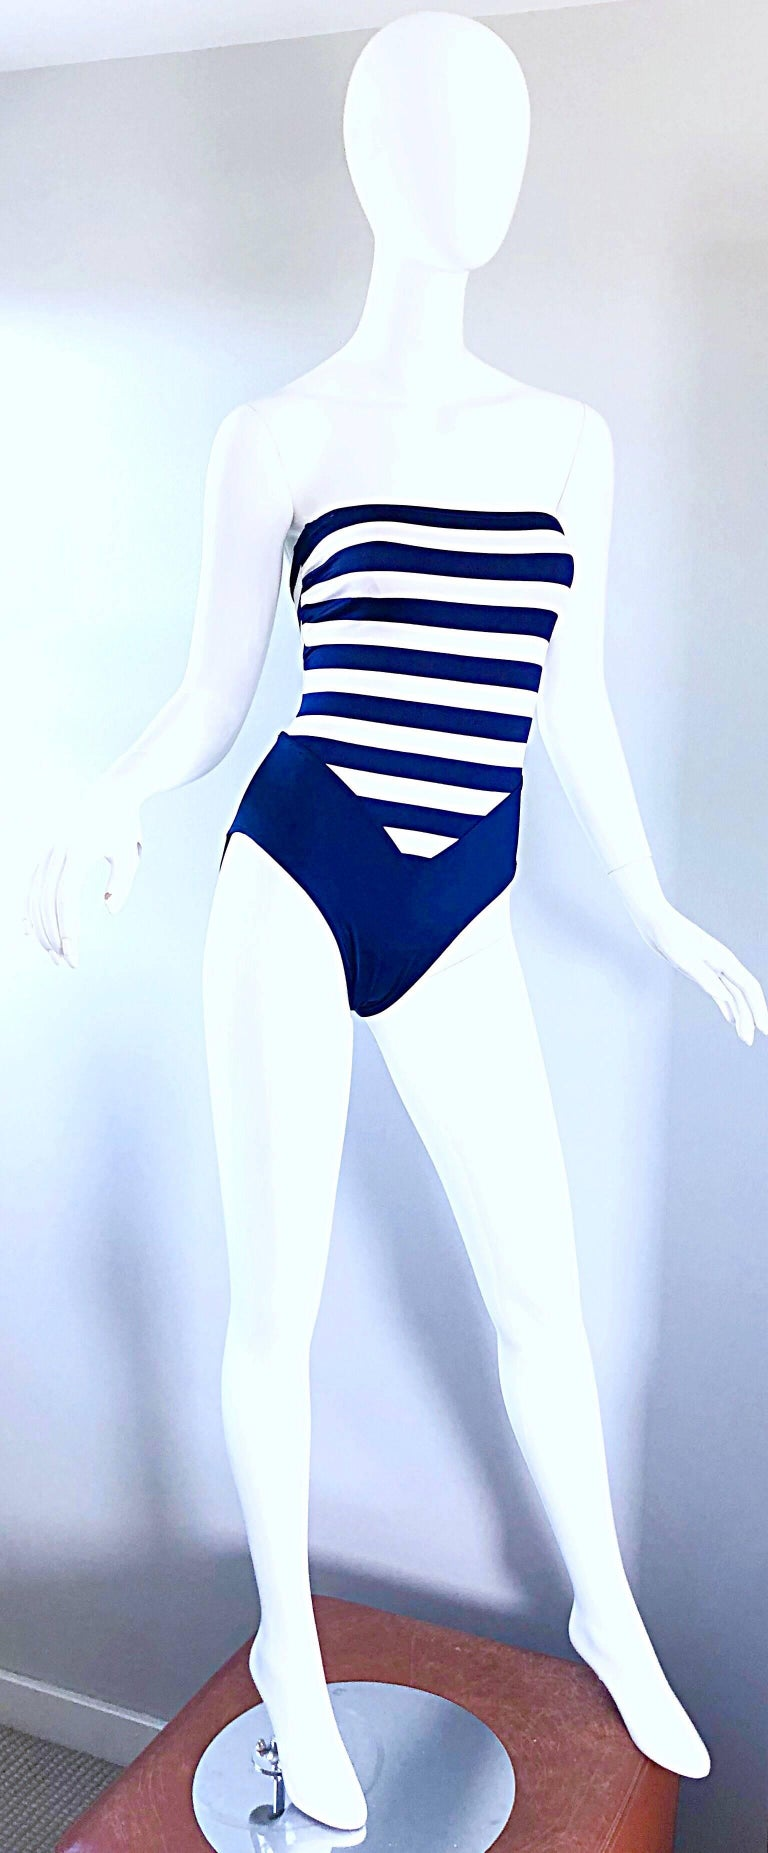 Women's Bill Blass Navy Blue and White Striped Cut - Out One Piece Swimsuit, 1990s  For Sale